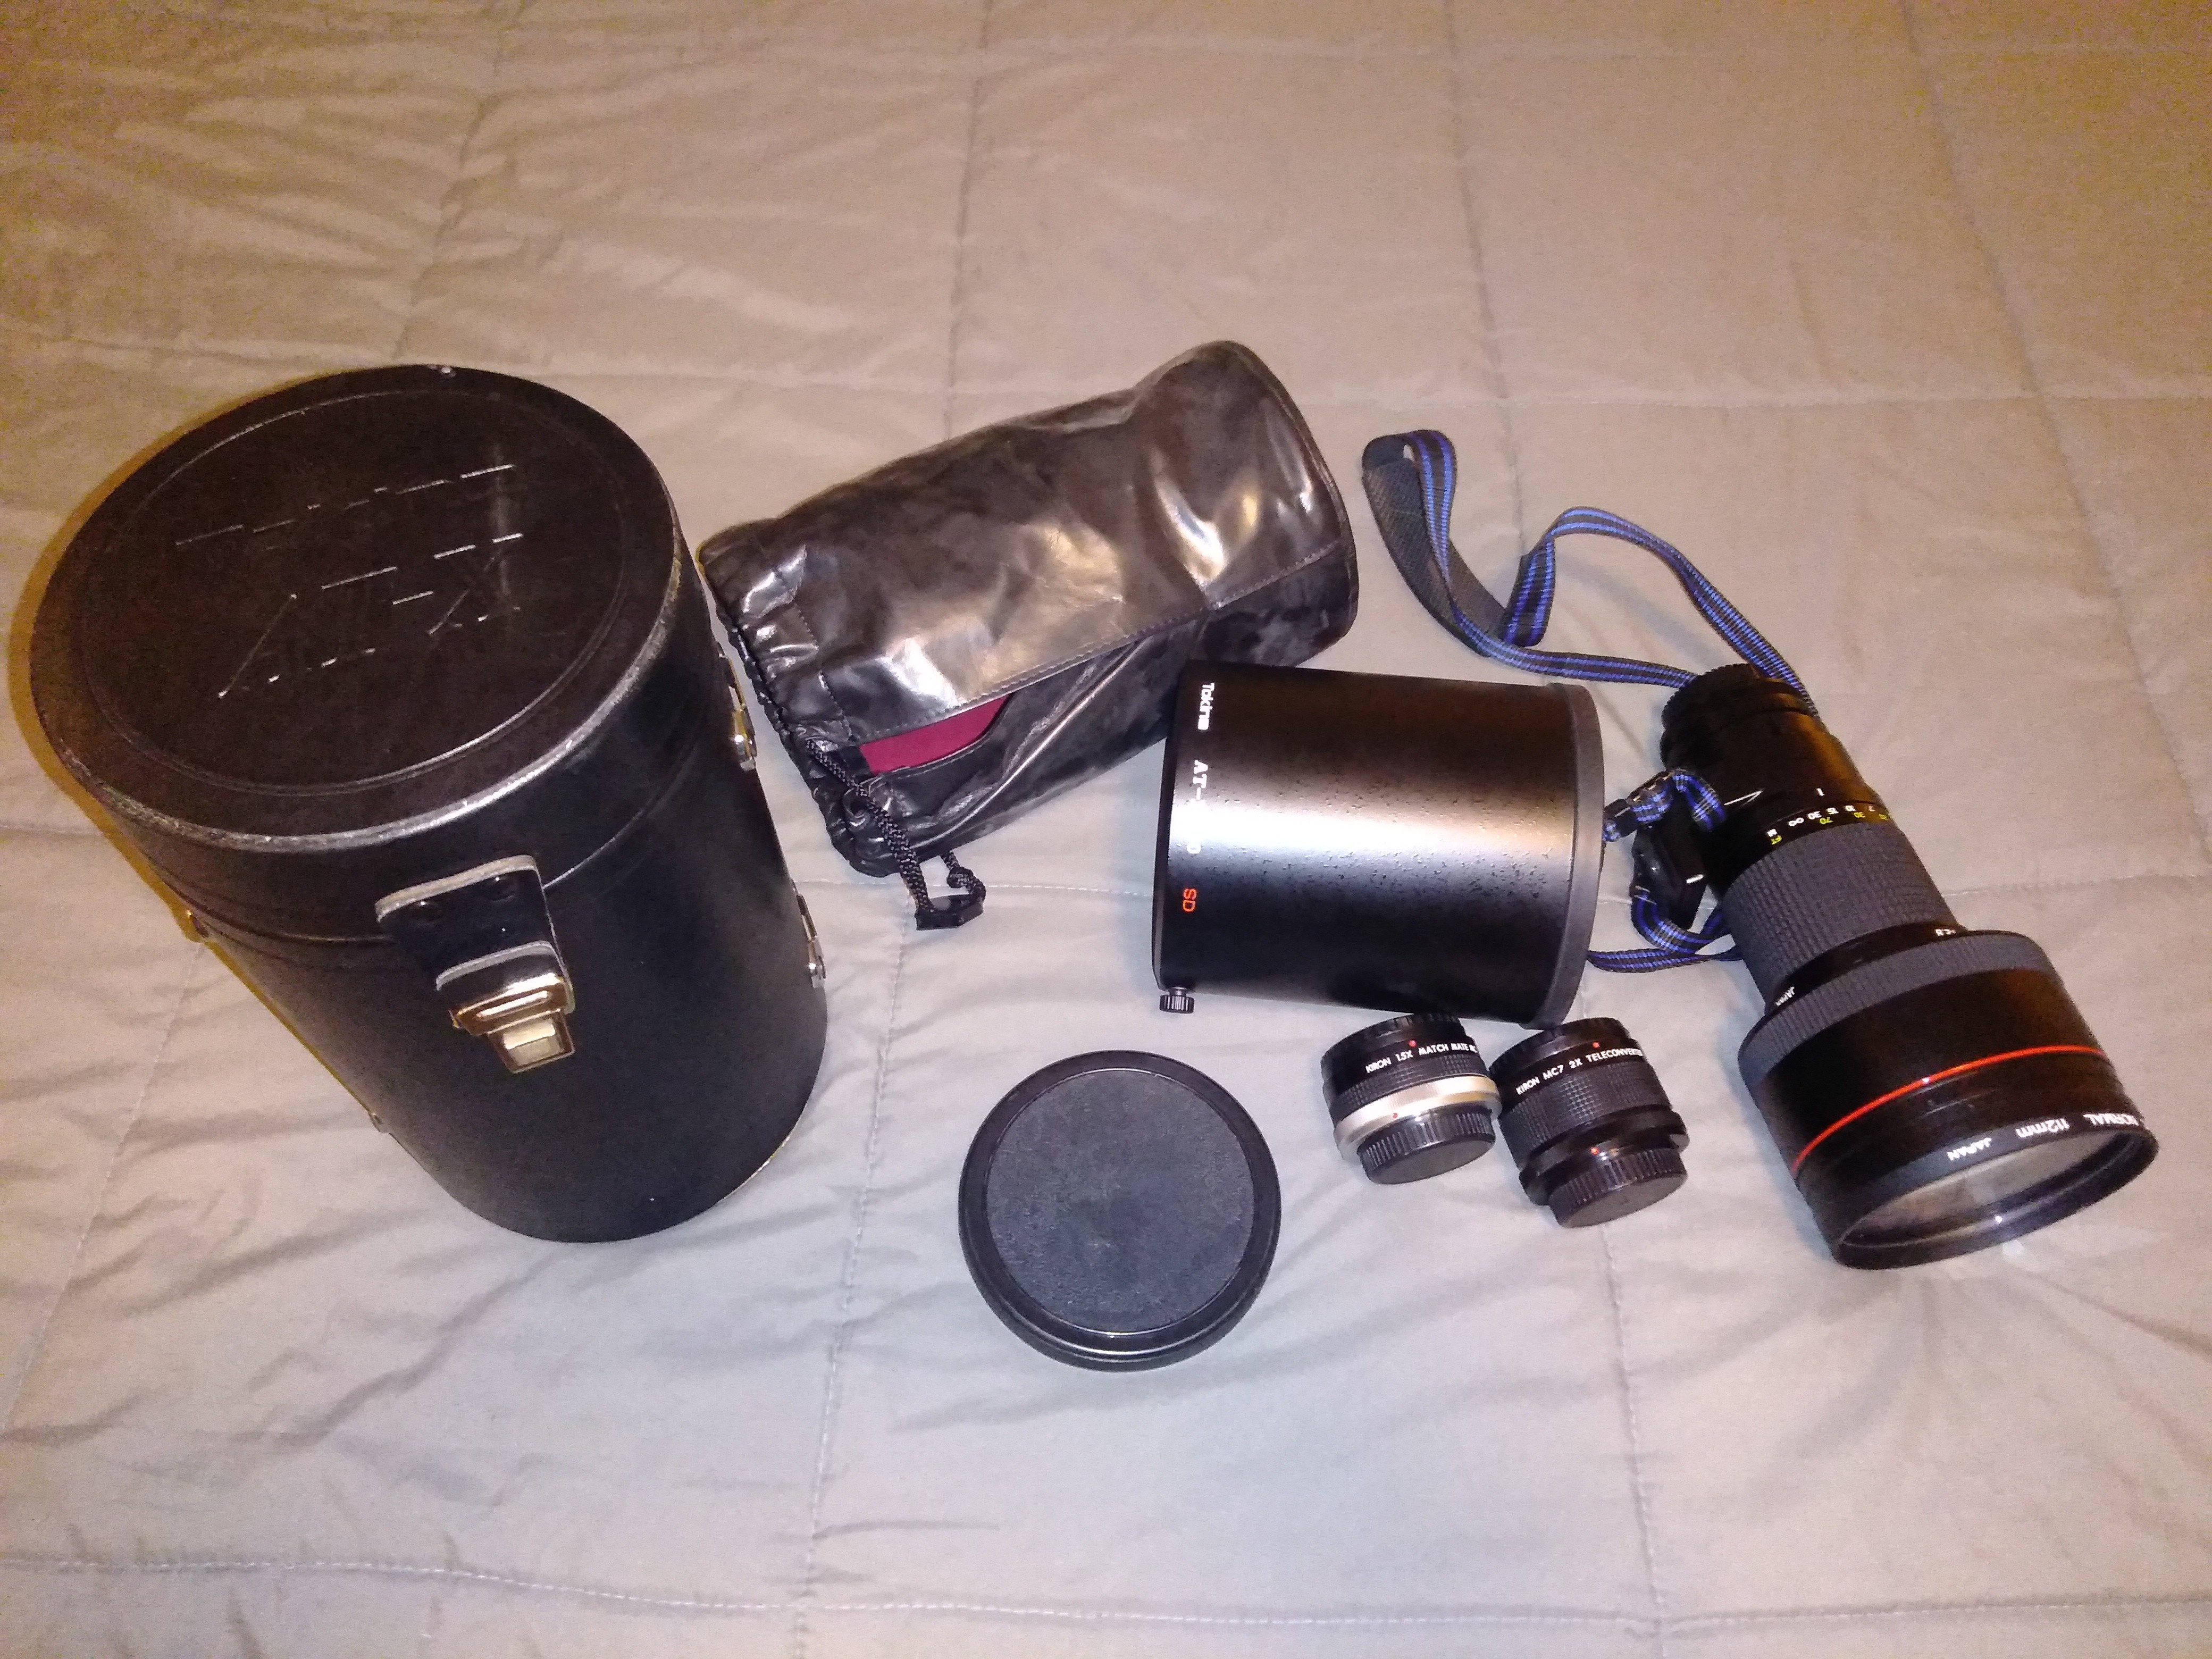 Tokina AT-X SD 300mm f/2 8 MF Lens w/2 teleconverters - FD mount